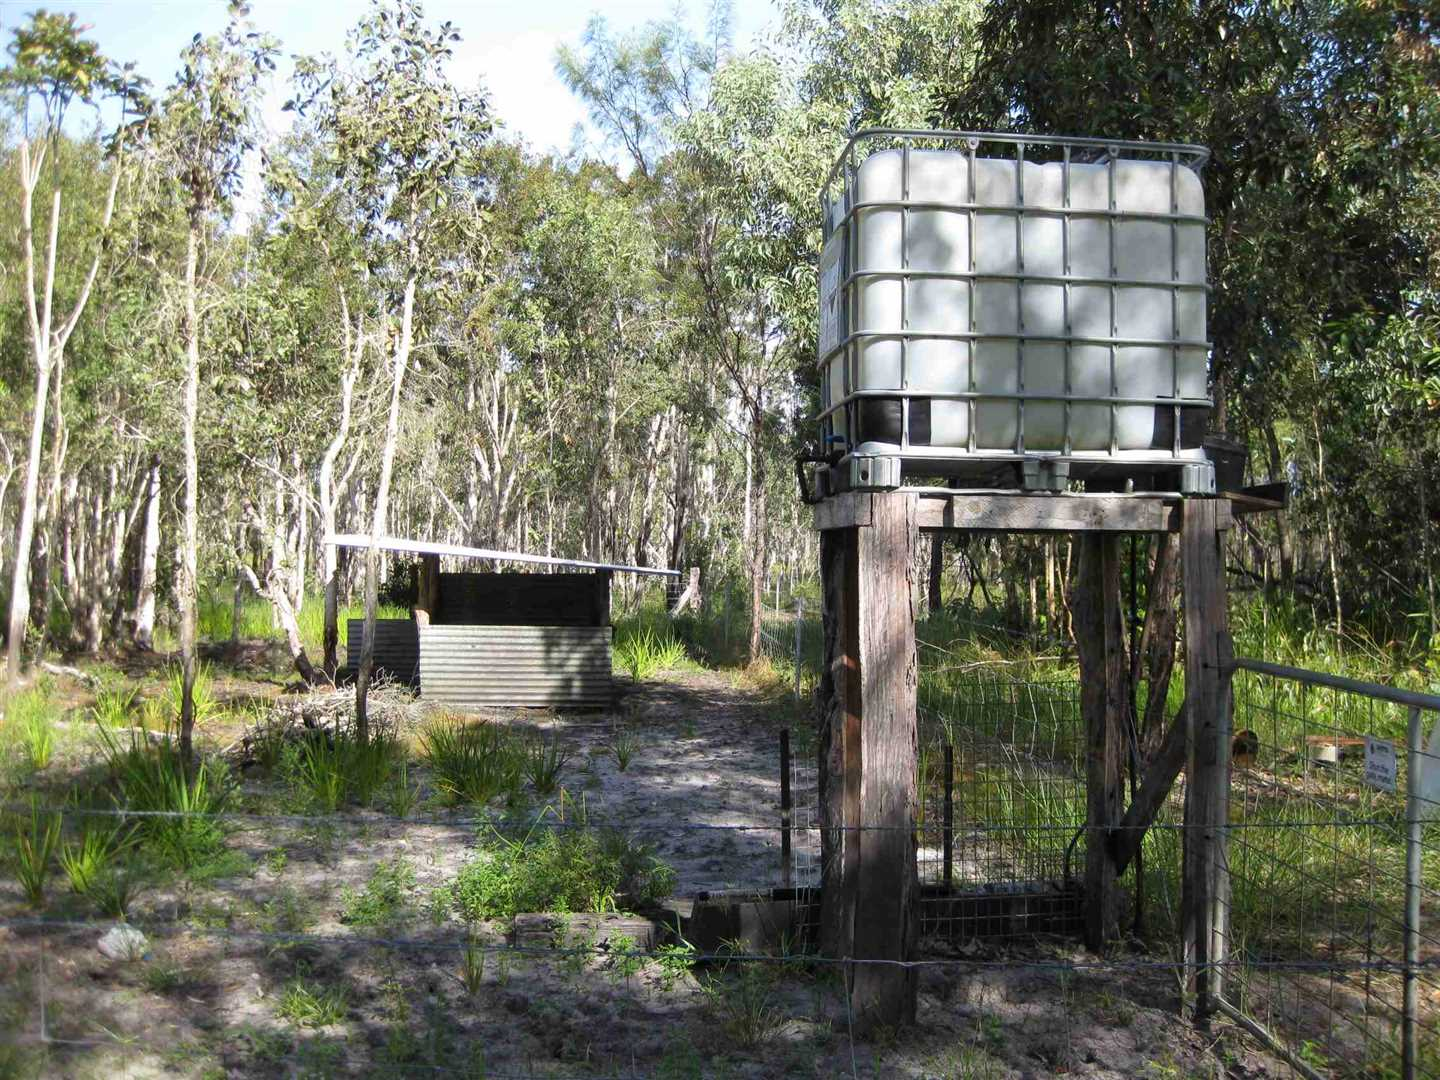 View of part of property showing part of 1,000 litre tank on stand (for livestock water use) and bush livestock shelter